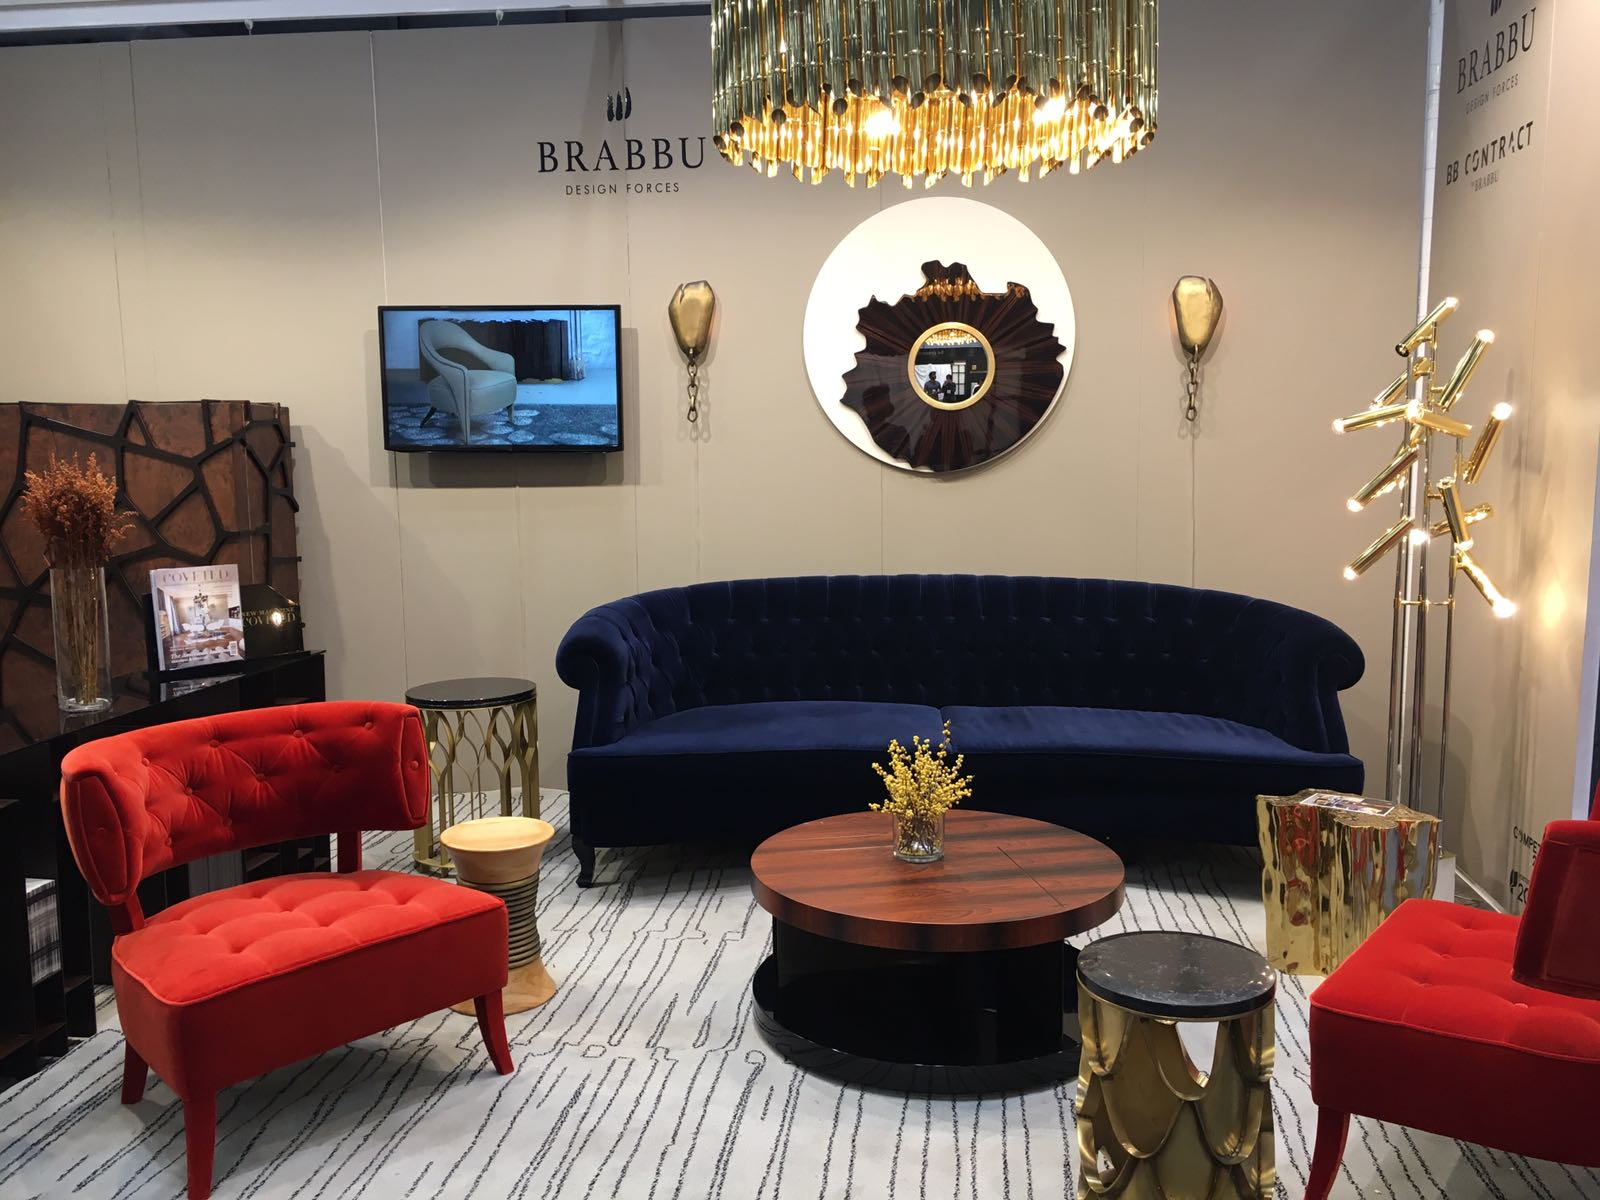 Highlights from BDNY 2016 bdny 2016 Highlights from BDNY 2016  F1AEED29915BBE1D5906524BA03C849C48CD1EC17E18A26C59 pimgpsh fullsize distr